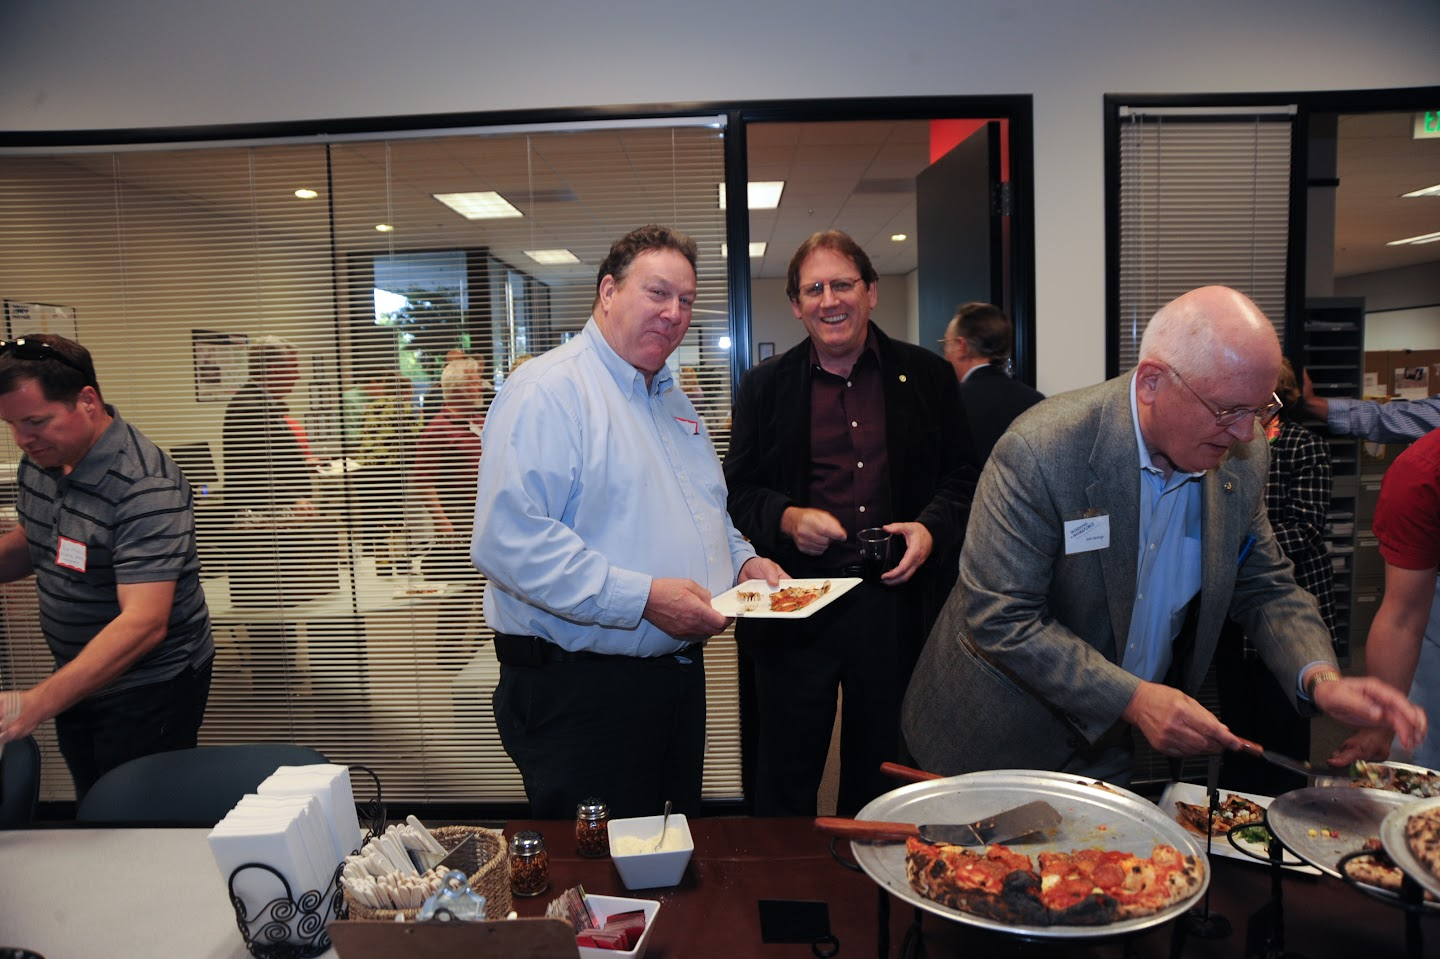 Rotary Means Business at Discovery Office with Rosso Pizzeria - DSC_6805.jpg